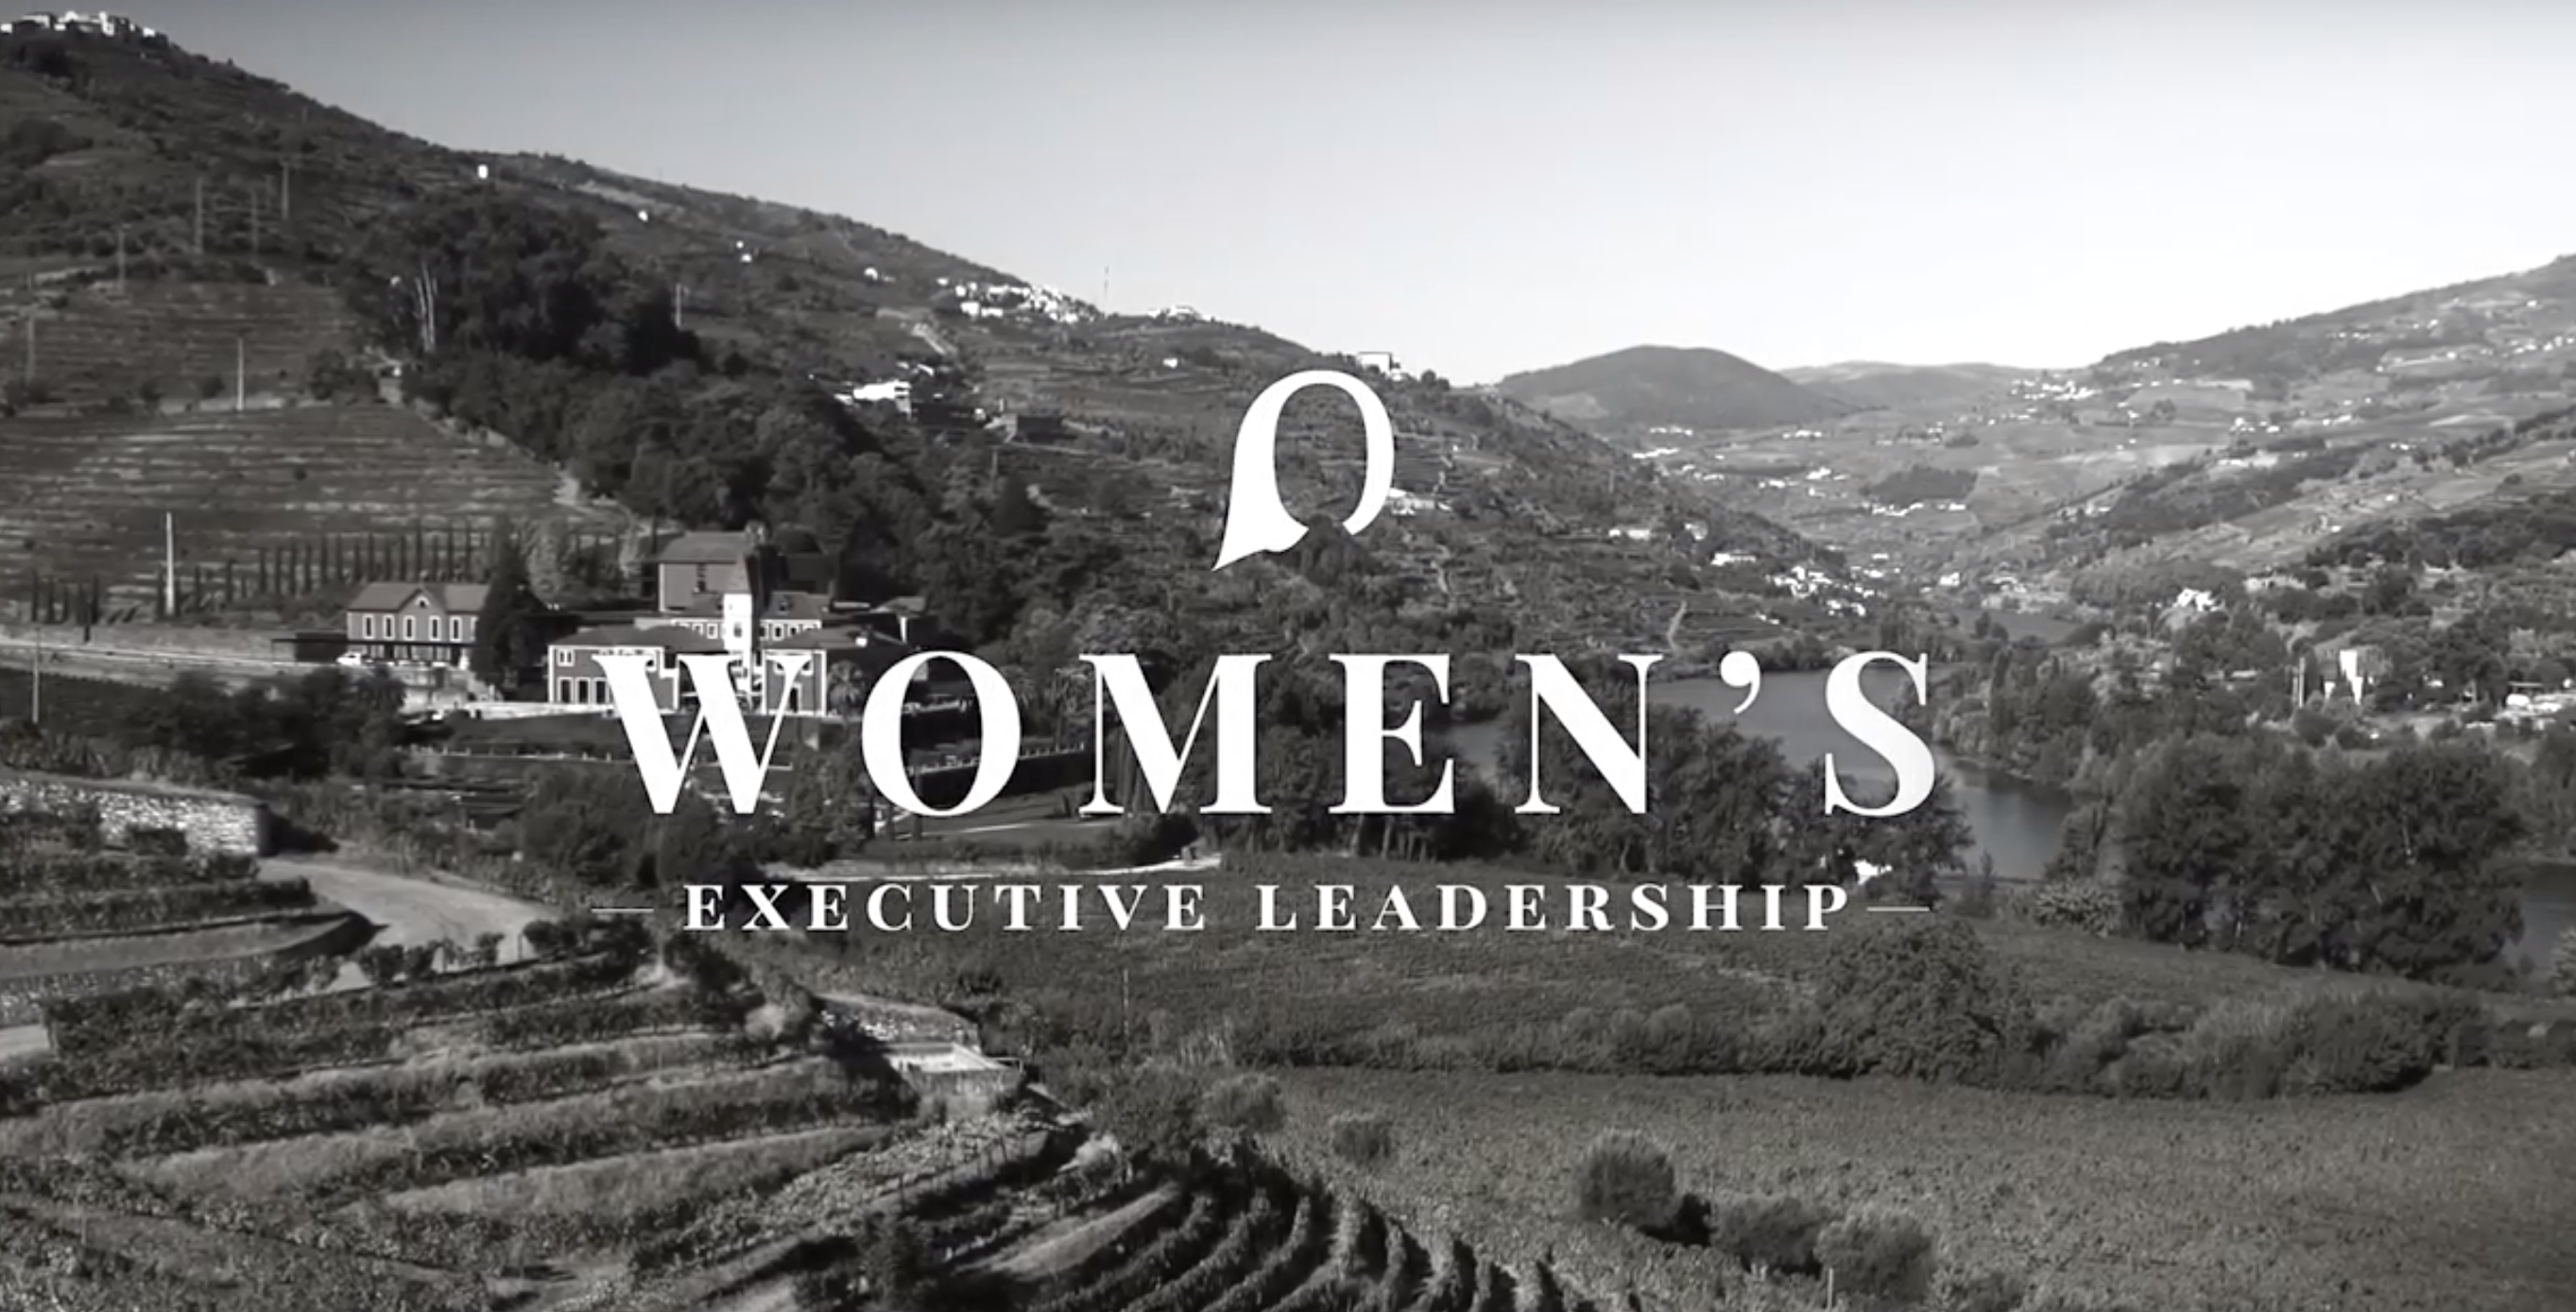 WOMENS EXECUTIVE LEADERSHIP